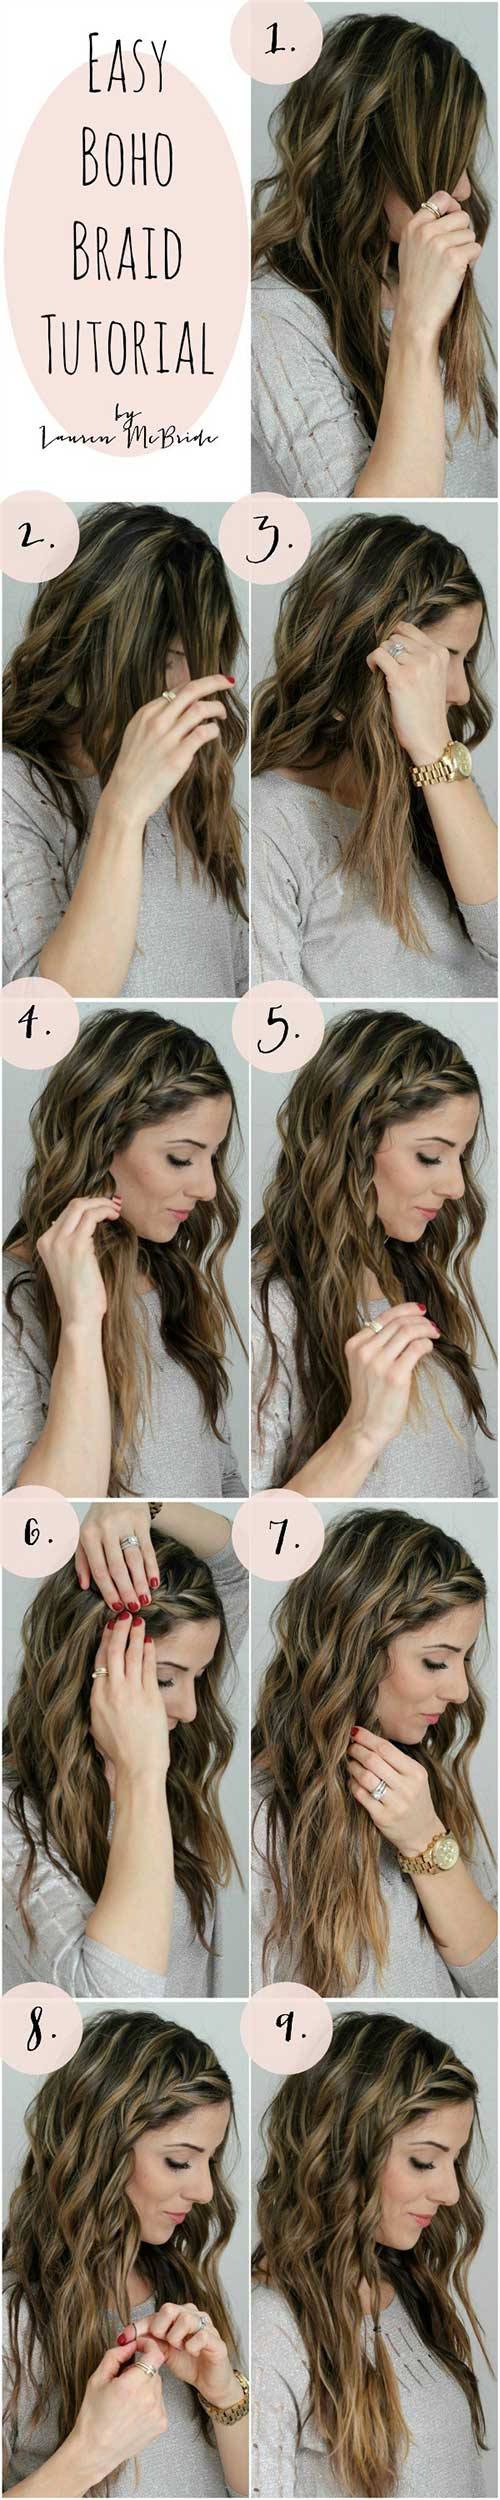 11 Awesome Hairstyles For Girls With Long Hair